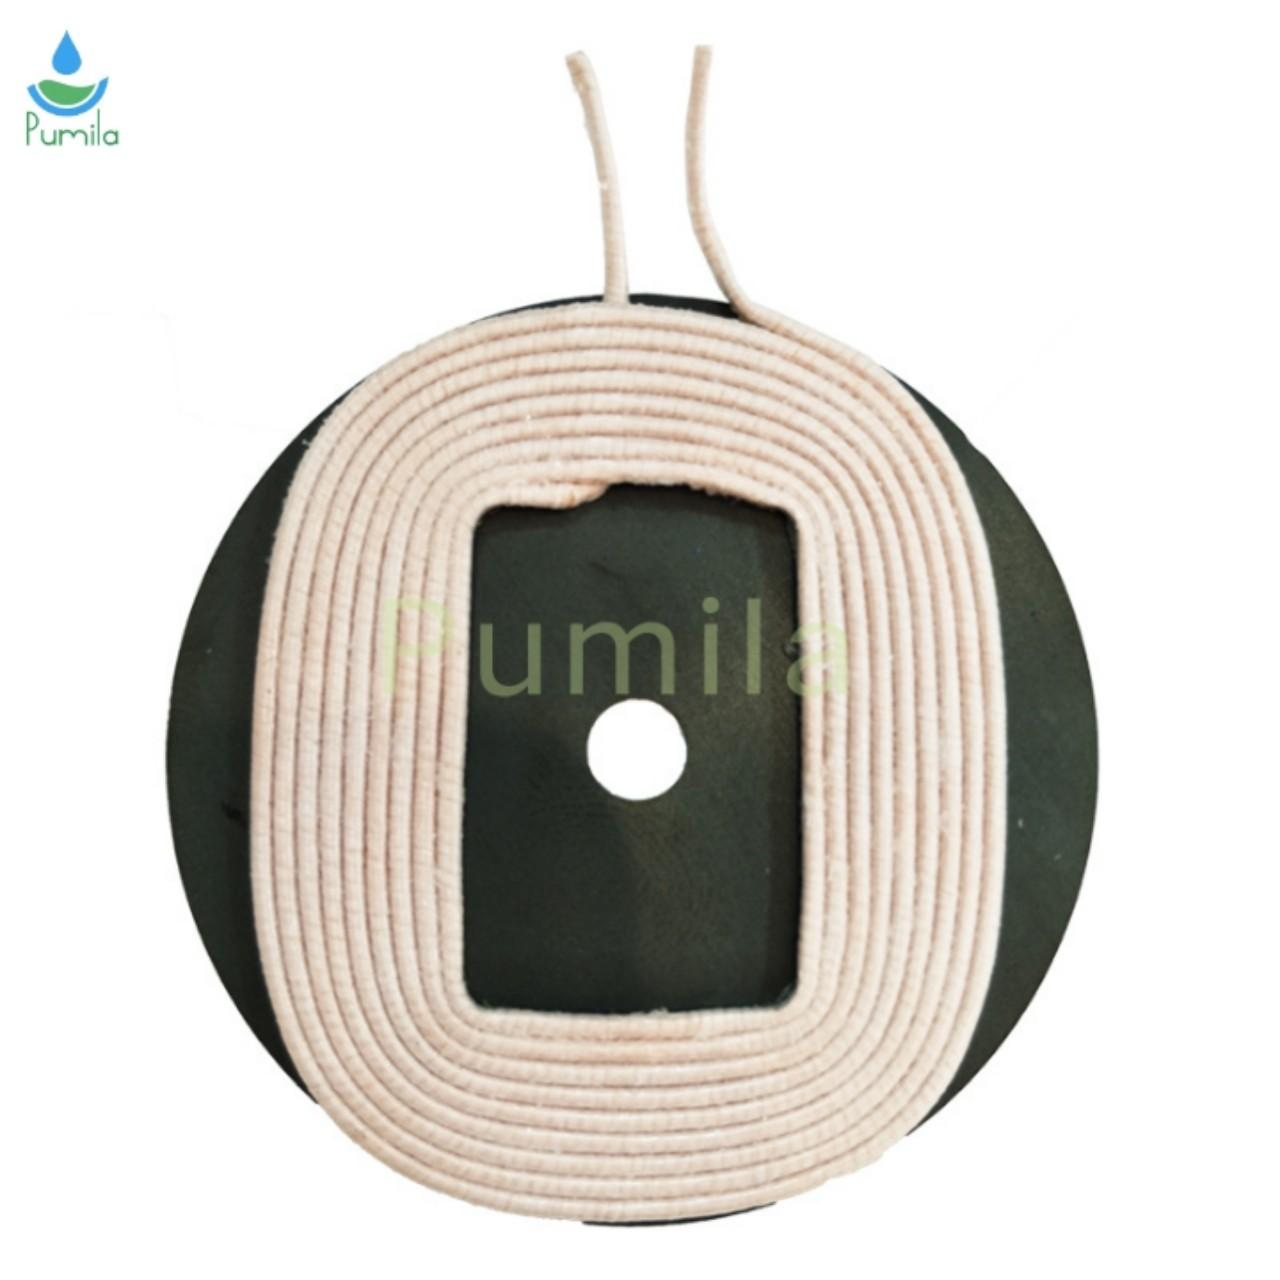 A11 QI Air Wireless Charger Transmitter Coil for smartphone for sale